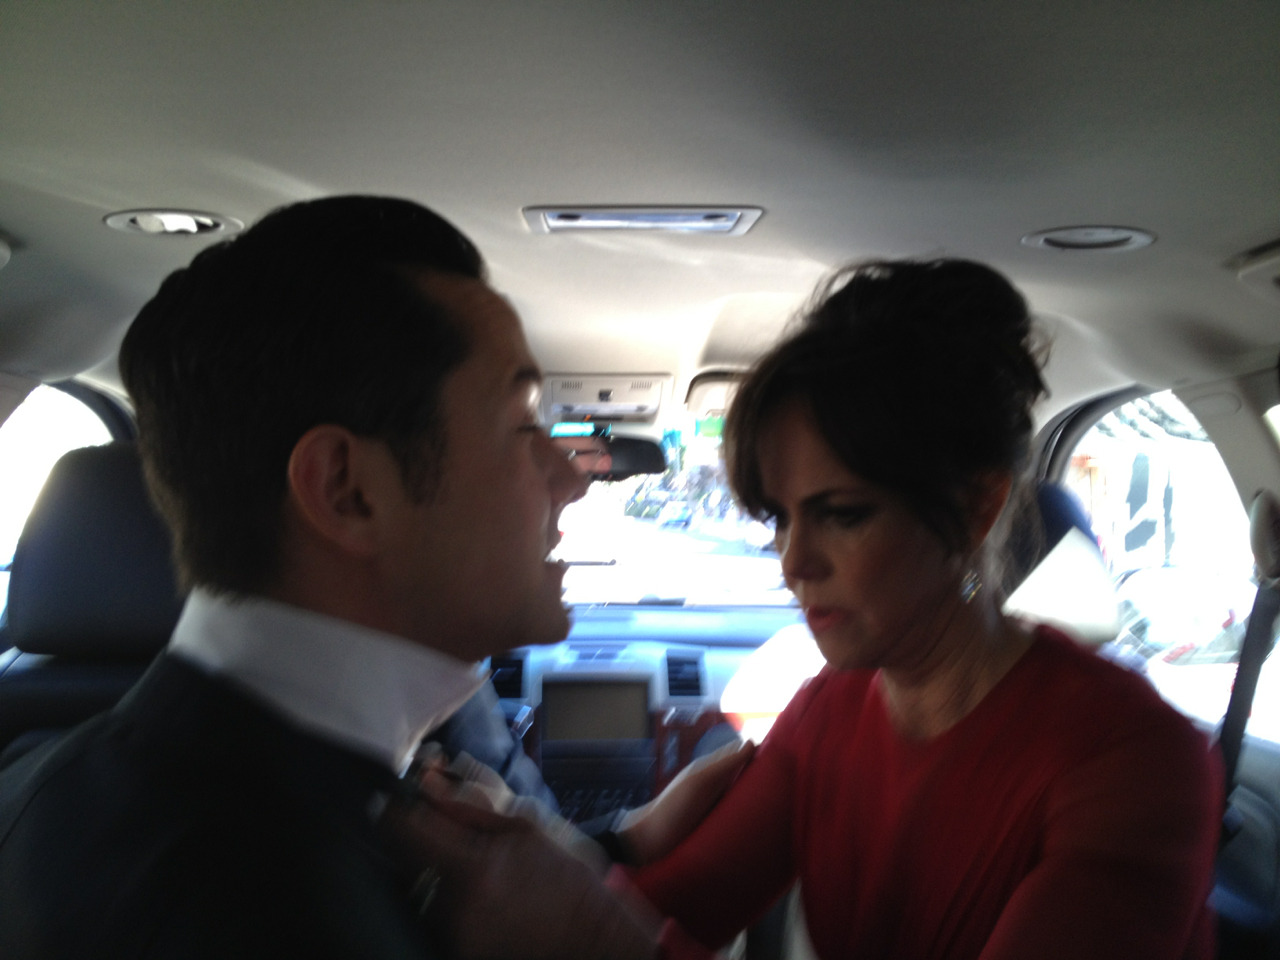 hitrecordjoe:  Sally did indeed know how to tie a bow tie! I thought she would. #Oscars  OMG Sally Field is so method. Still in character all the way up until the big night! In your face, Daniel Day Lewis.